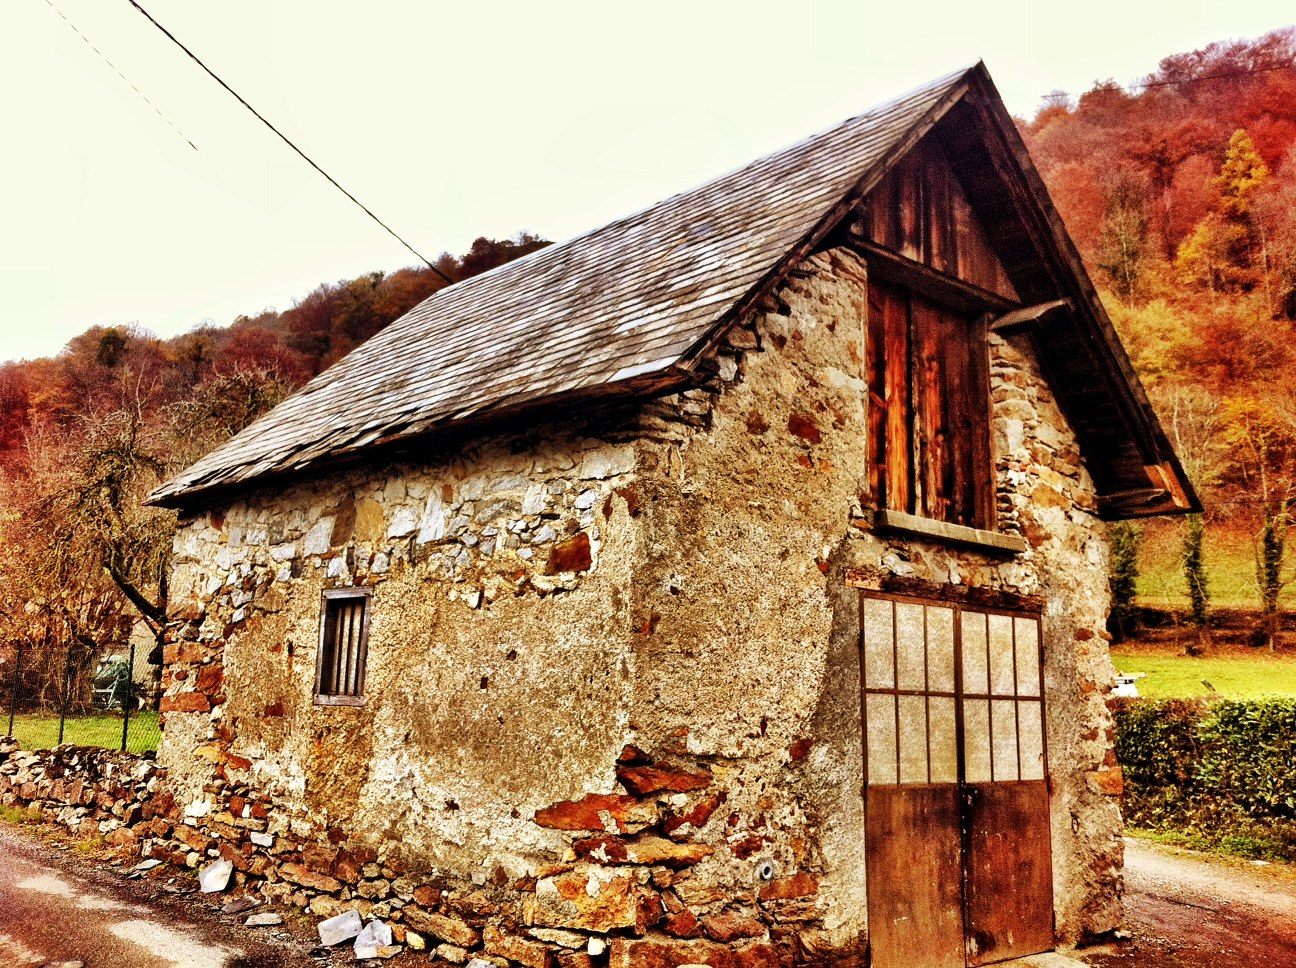 A Valley of Rustic Buildings